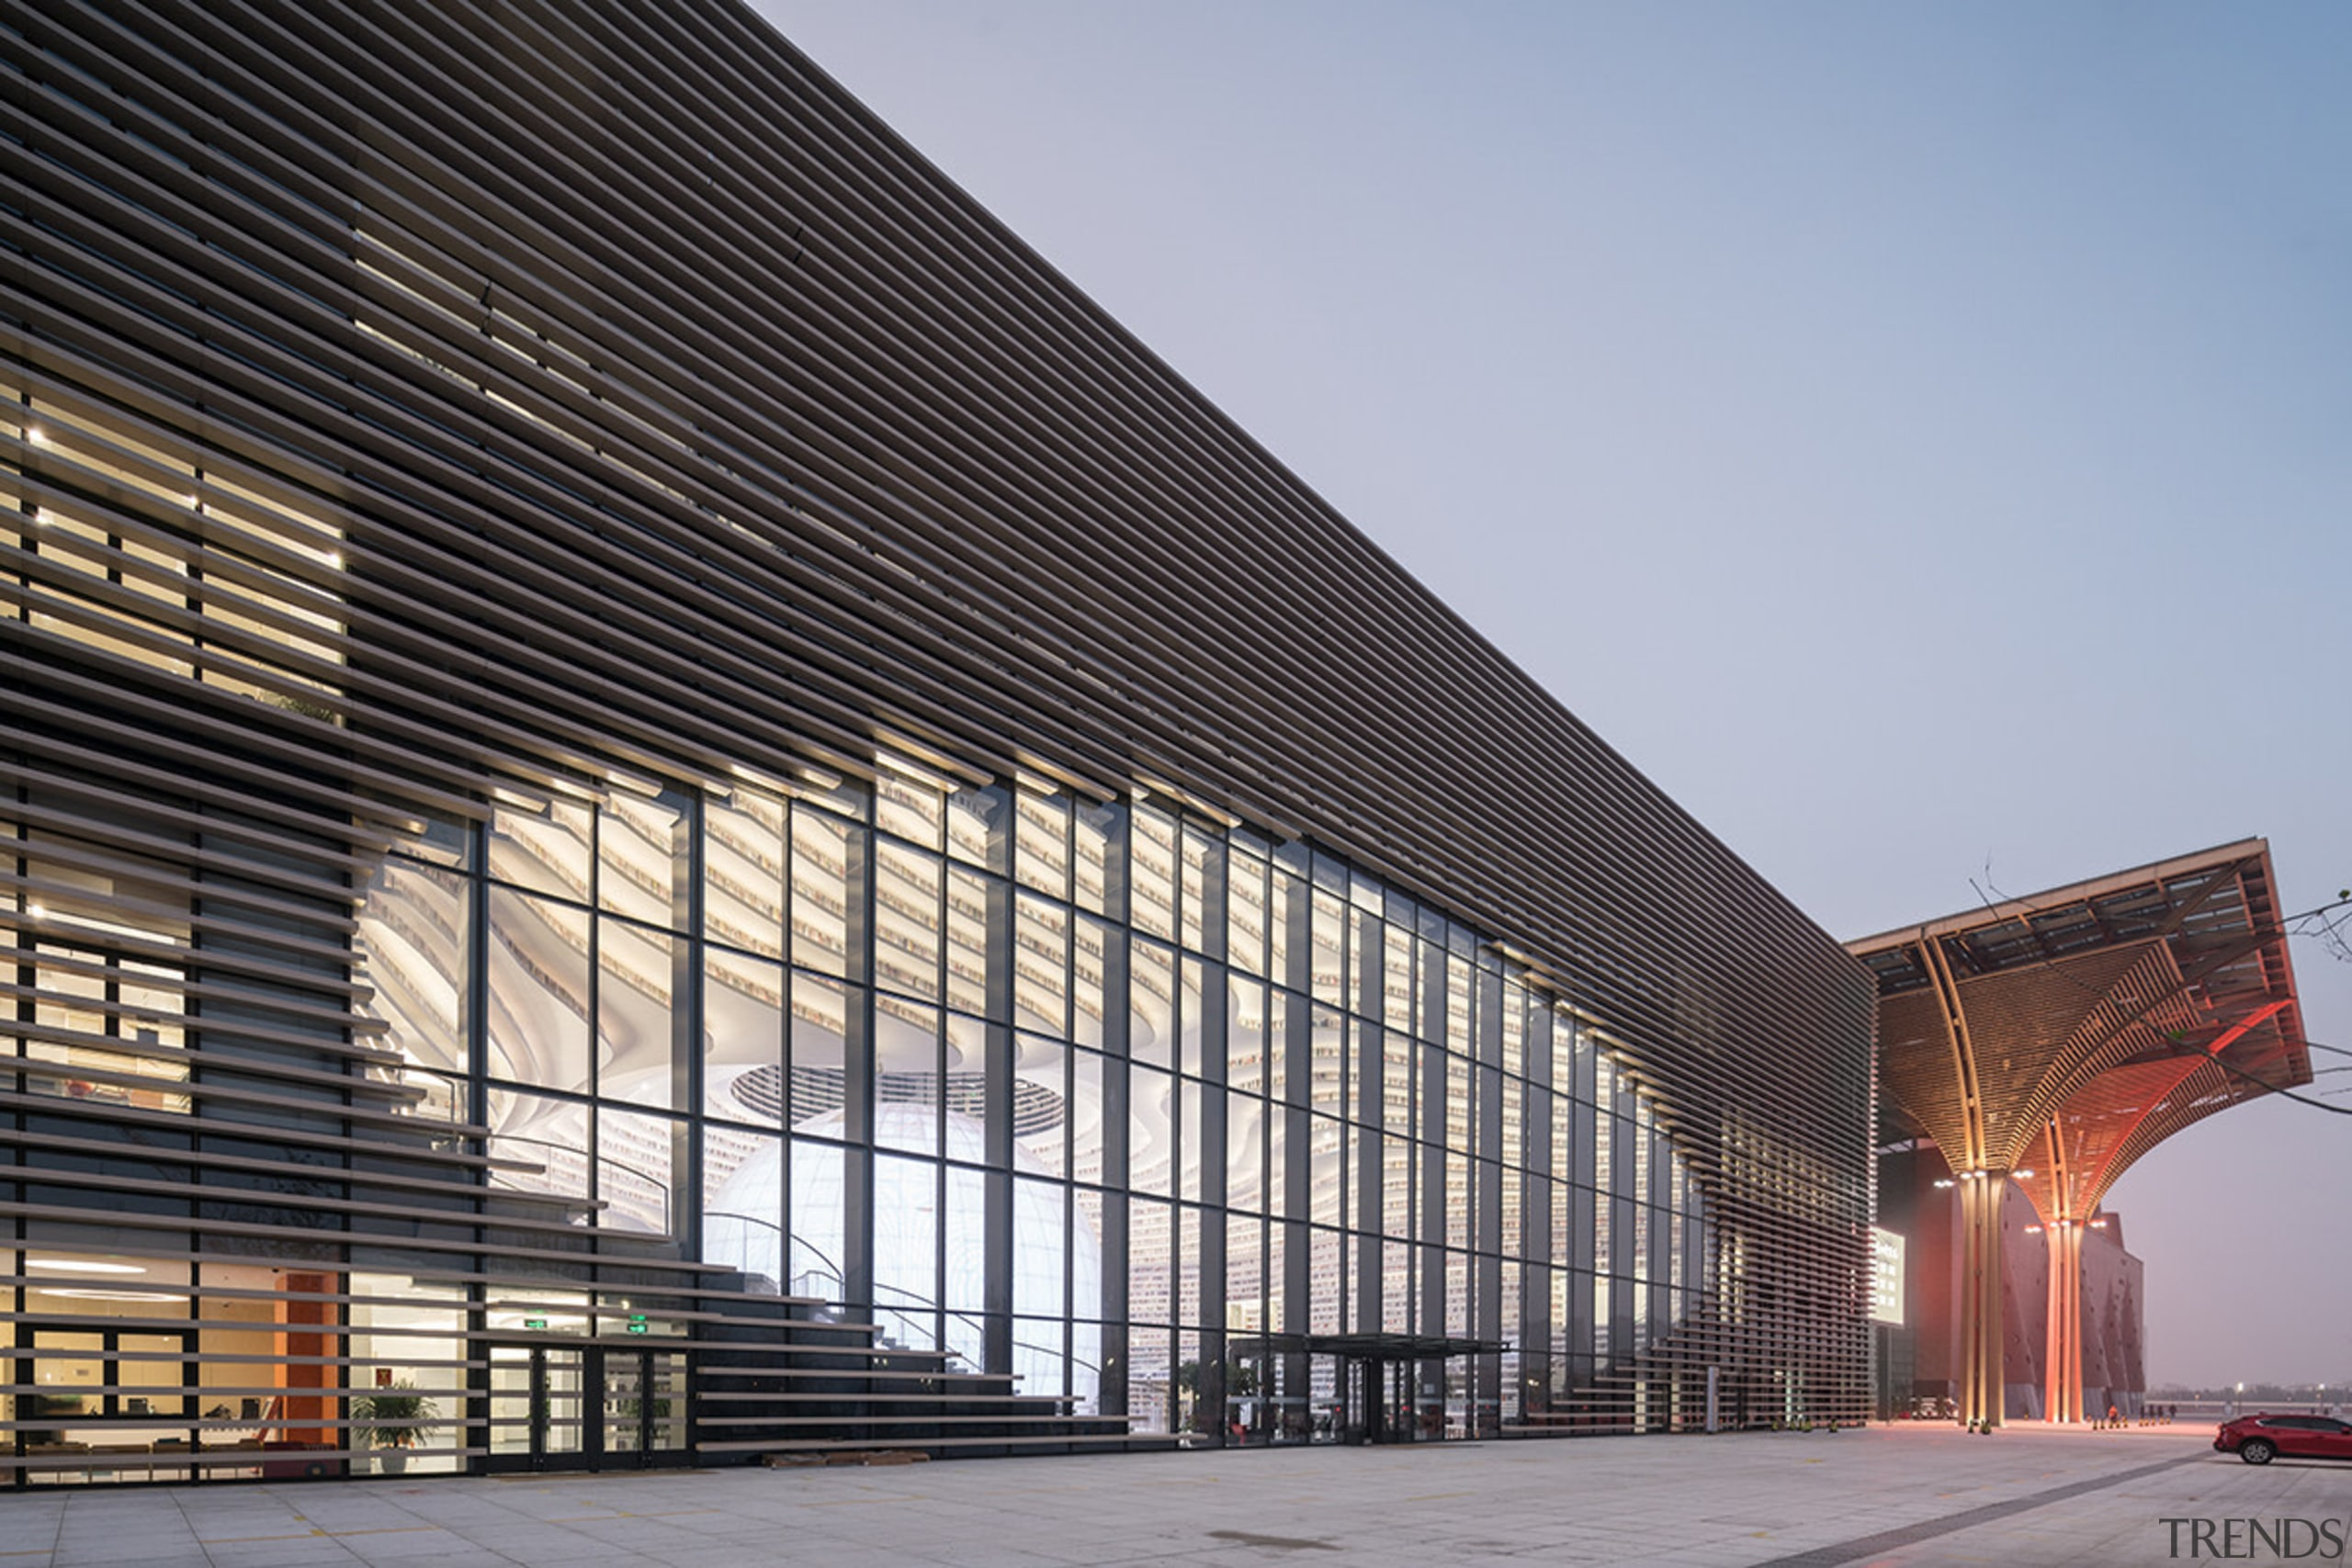 The Tianjin Binhai Library includes an eye-like aperture architecture, building, commercial building, convention center, corporate headquarters, daylighting, facade, headquarters, infrastructure, line, metropolis, metropolitan area, mixed use, sky, structure, gray, black